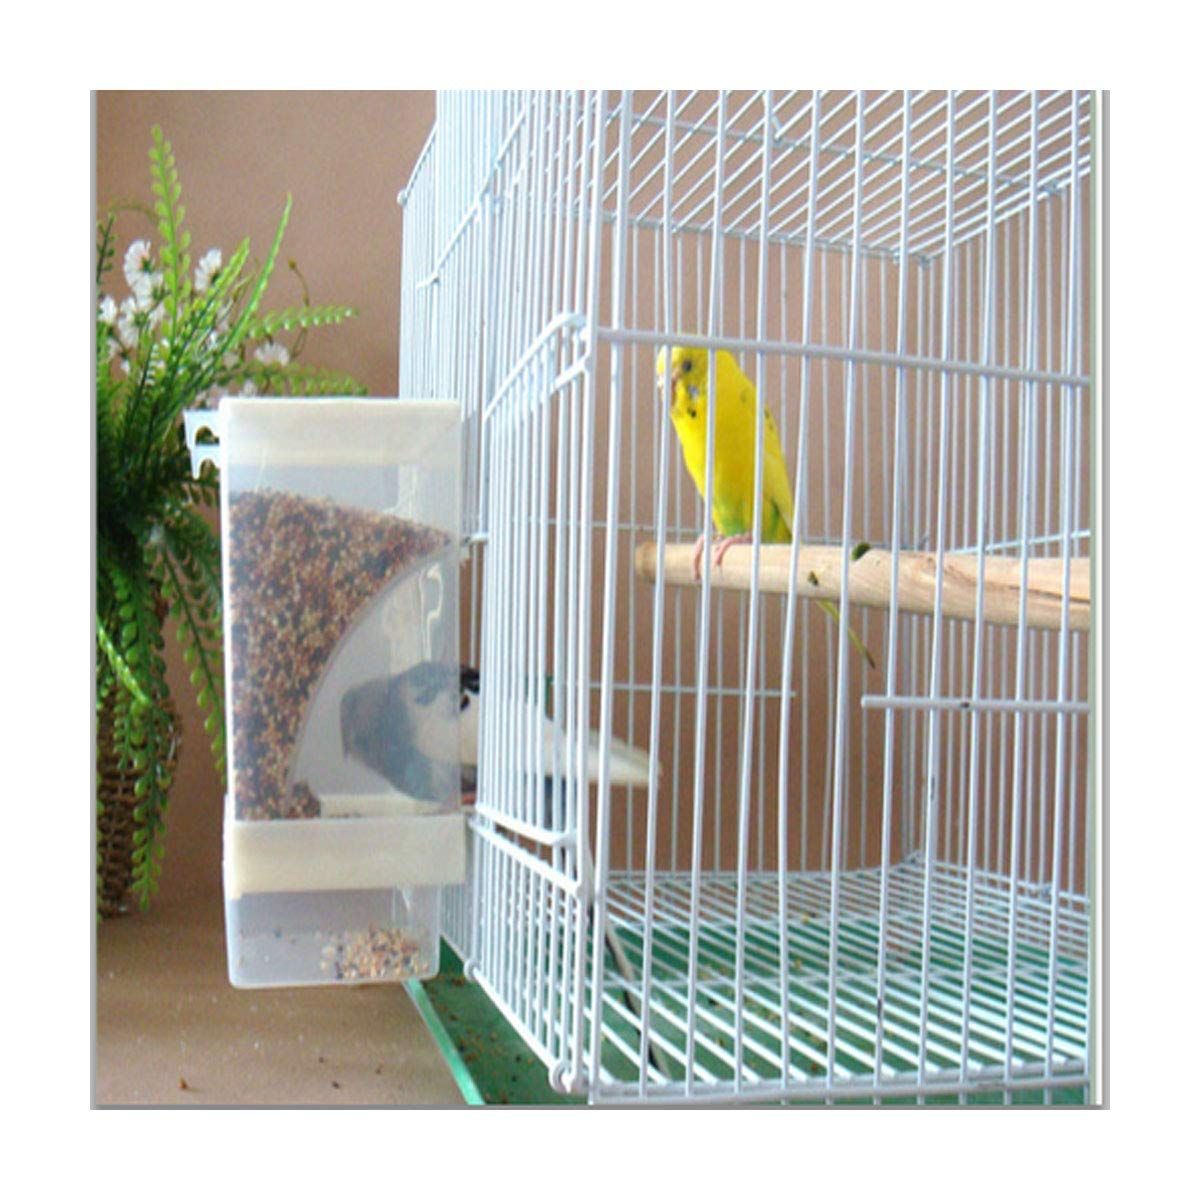 Parrot Bird Feeder Seed Food Container Cage Accessories for Canary Finch